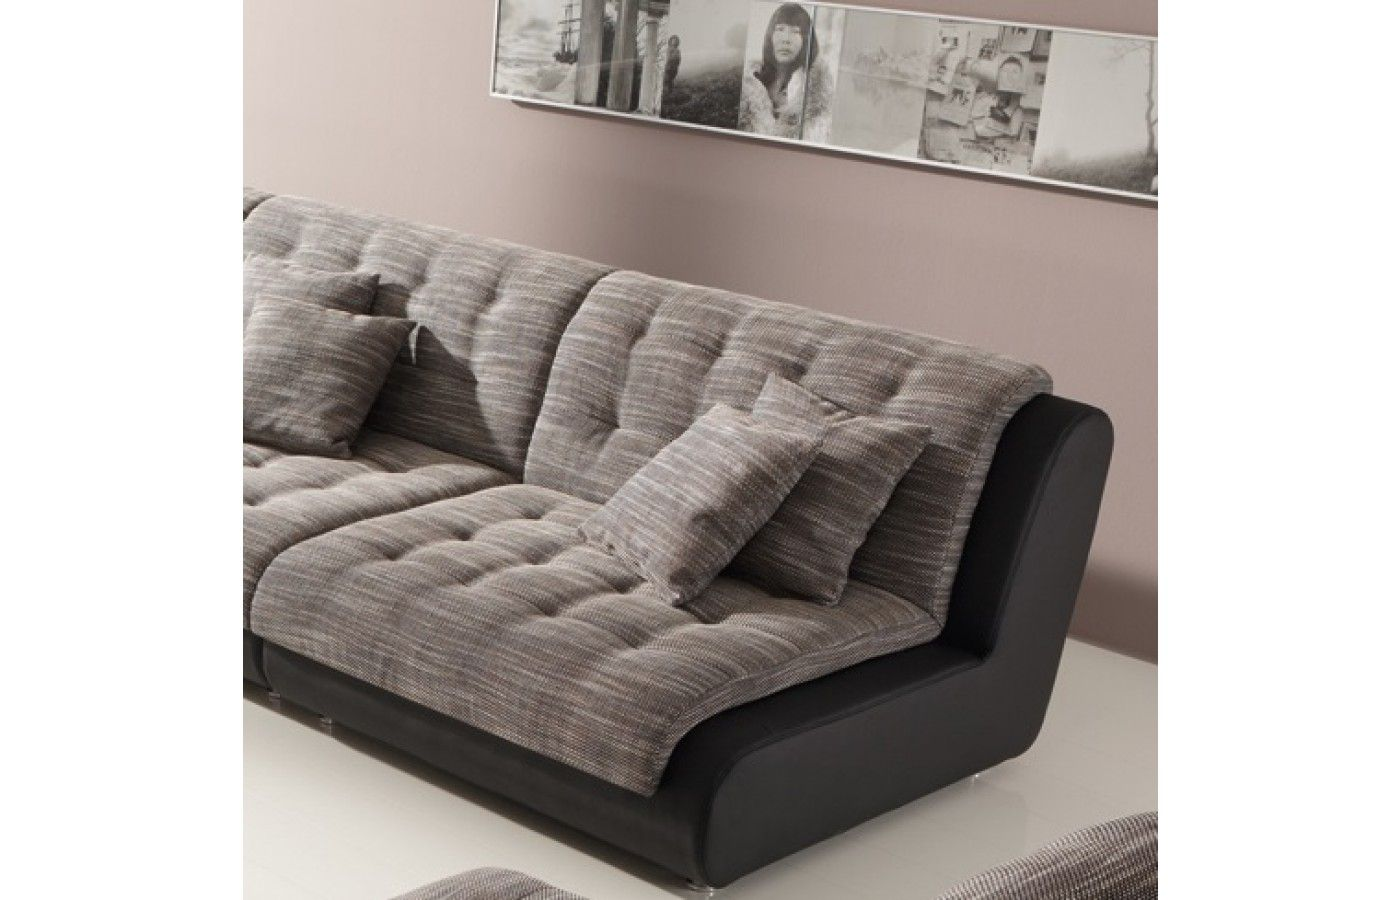 Exklusive Sofas materialmix wohnlandschaft leder stoff chillout one exklusiv